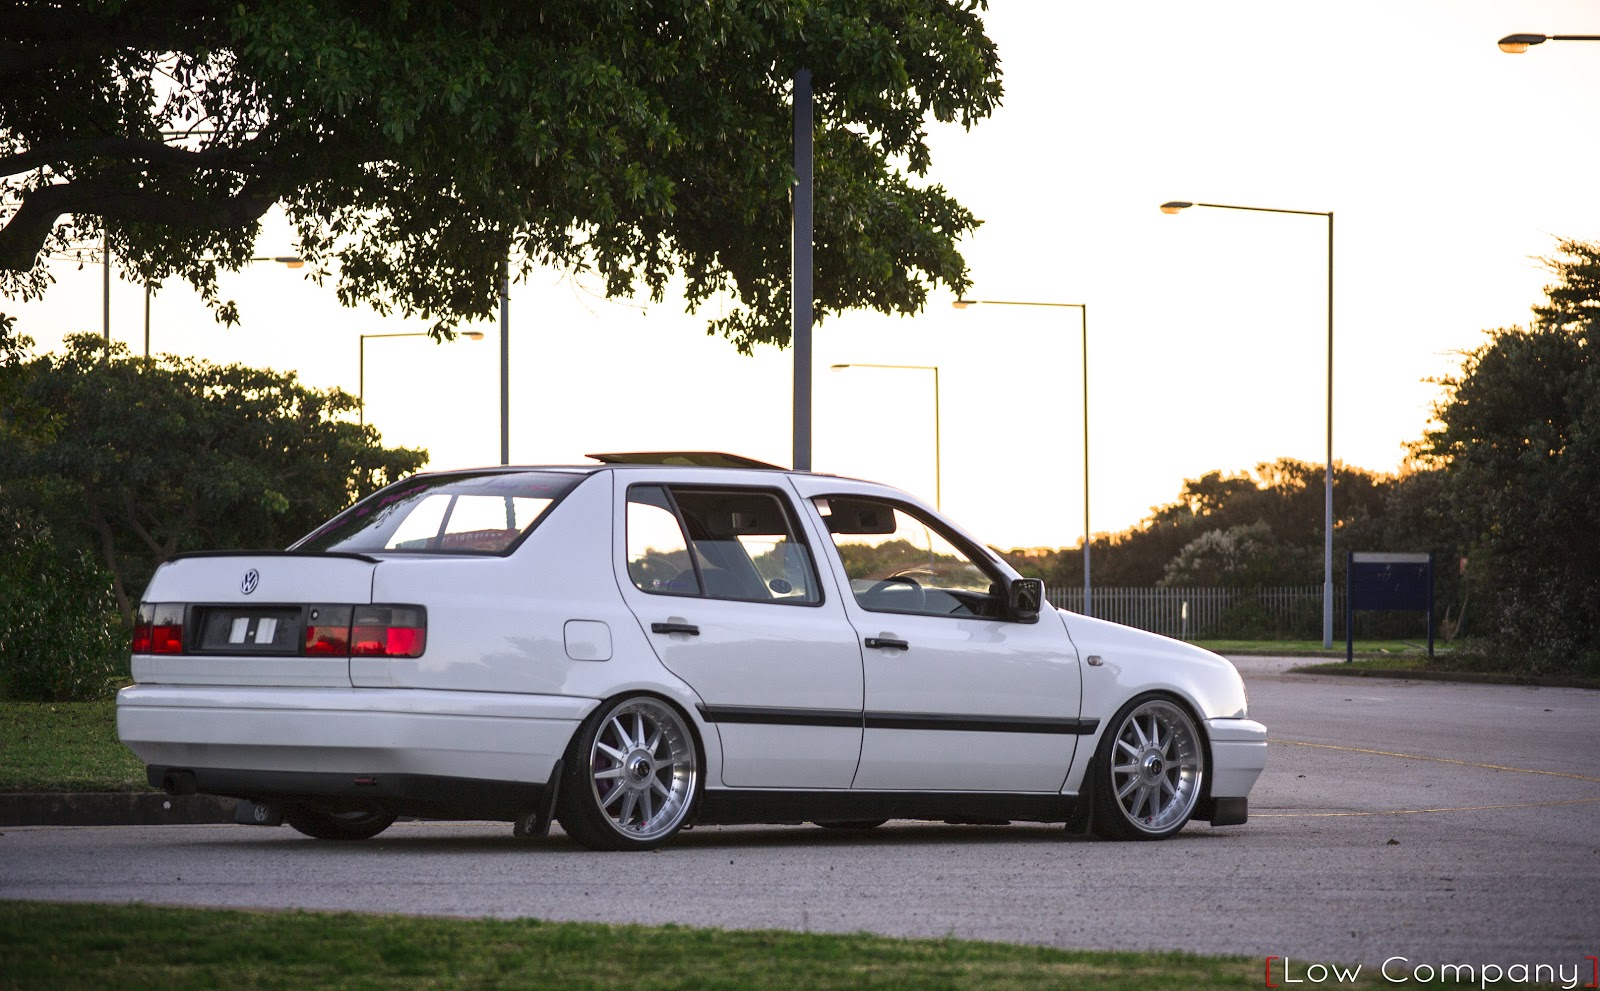 vw jetta vr6 with Less Is More Less Is More Weve All on Volkswagen Bora 1998 also Volkswagen Jetta Mk3 Ultimo Coilover Kit further Jetta A3 Euro Interiores as well Less Is More Less Is More Weve All as well Watch.